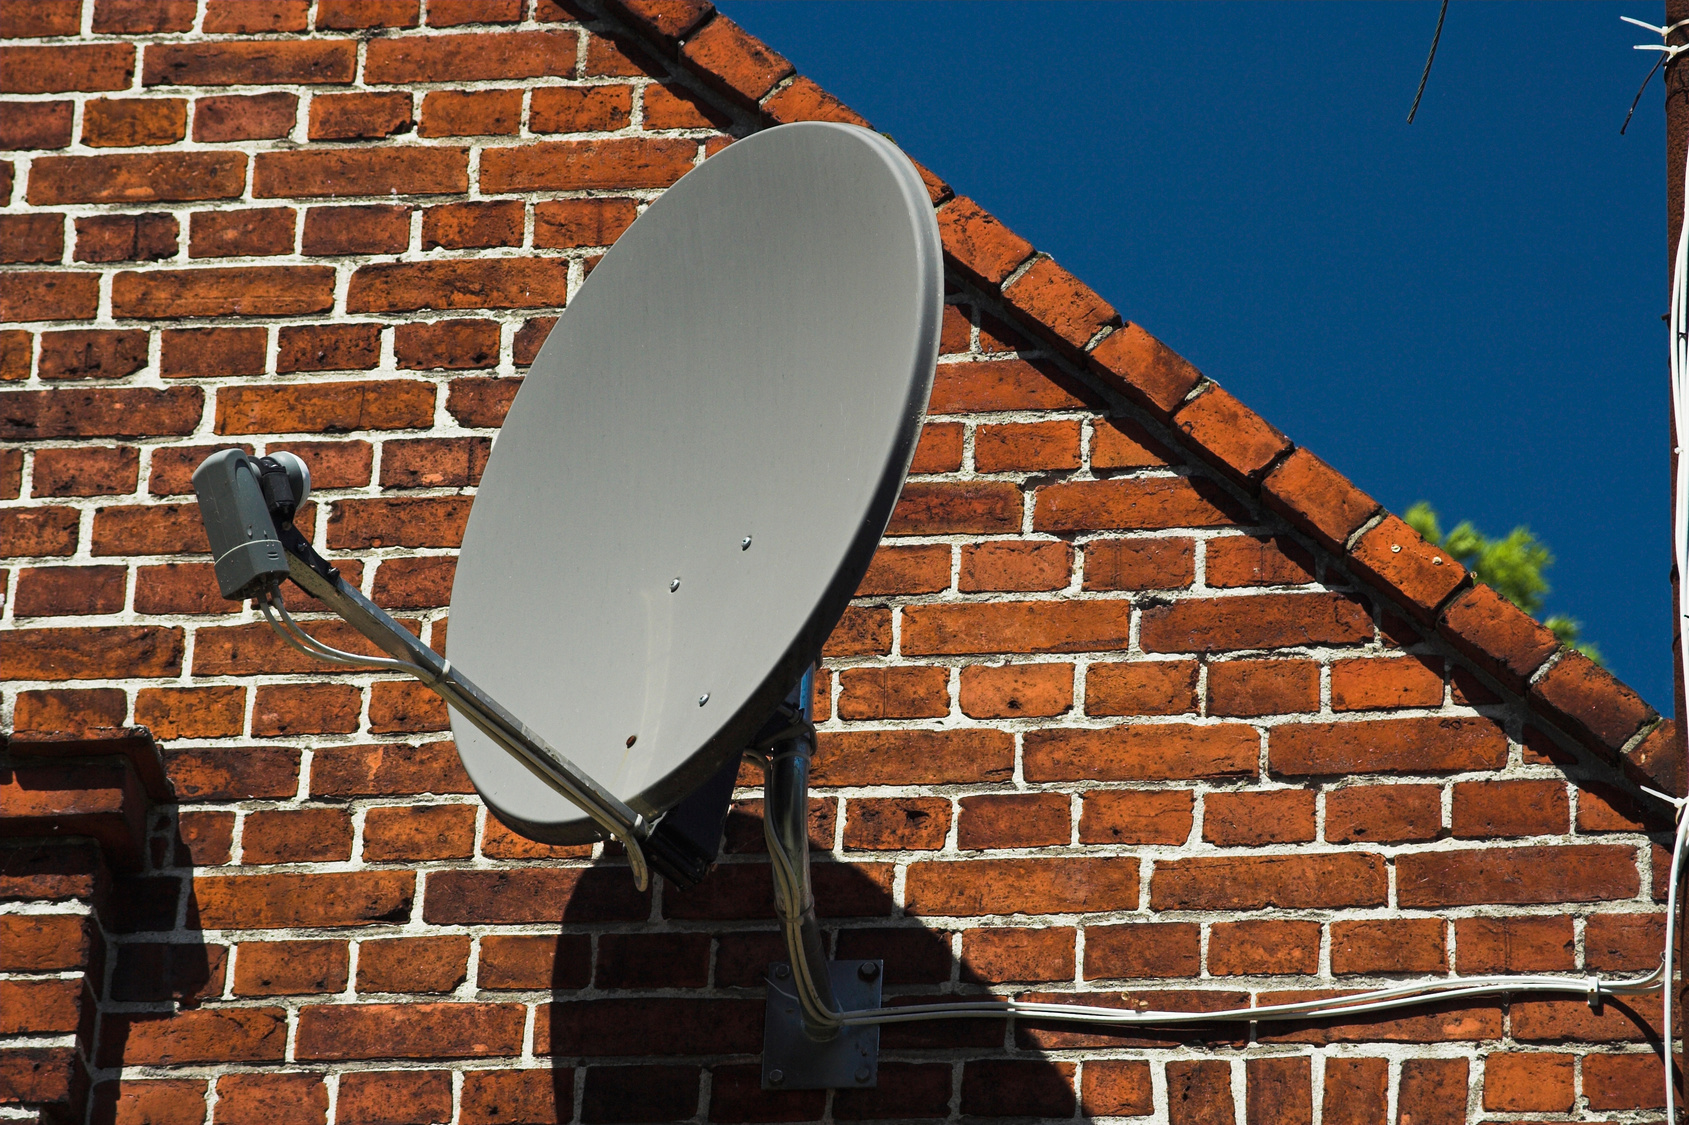 Parabole prix - Comment installer une parabole satellite ...